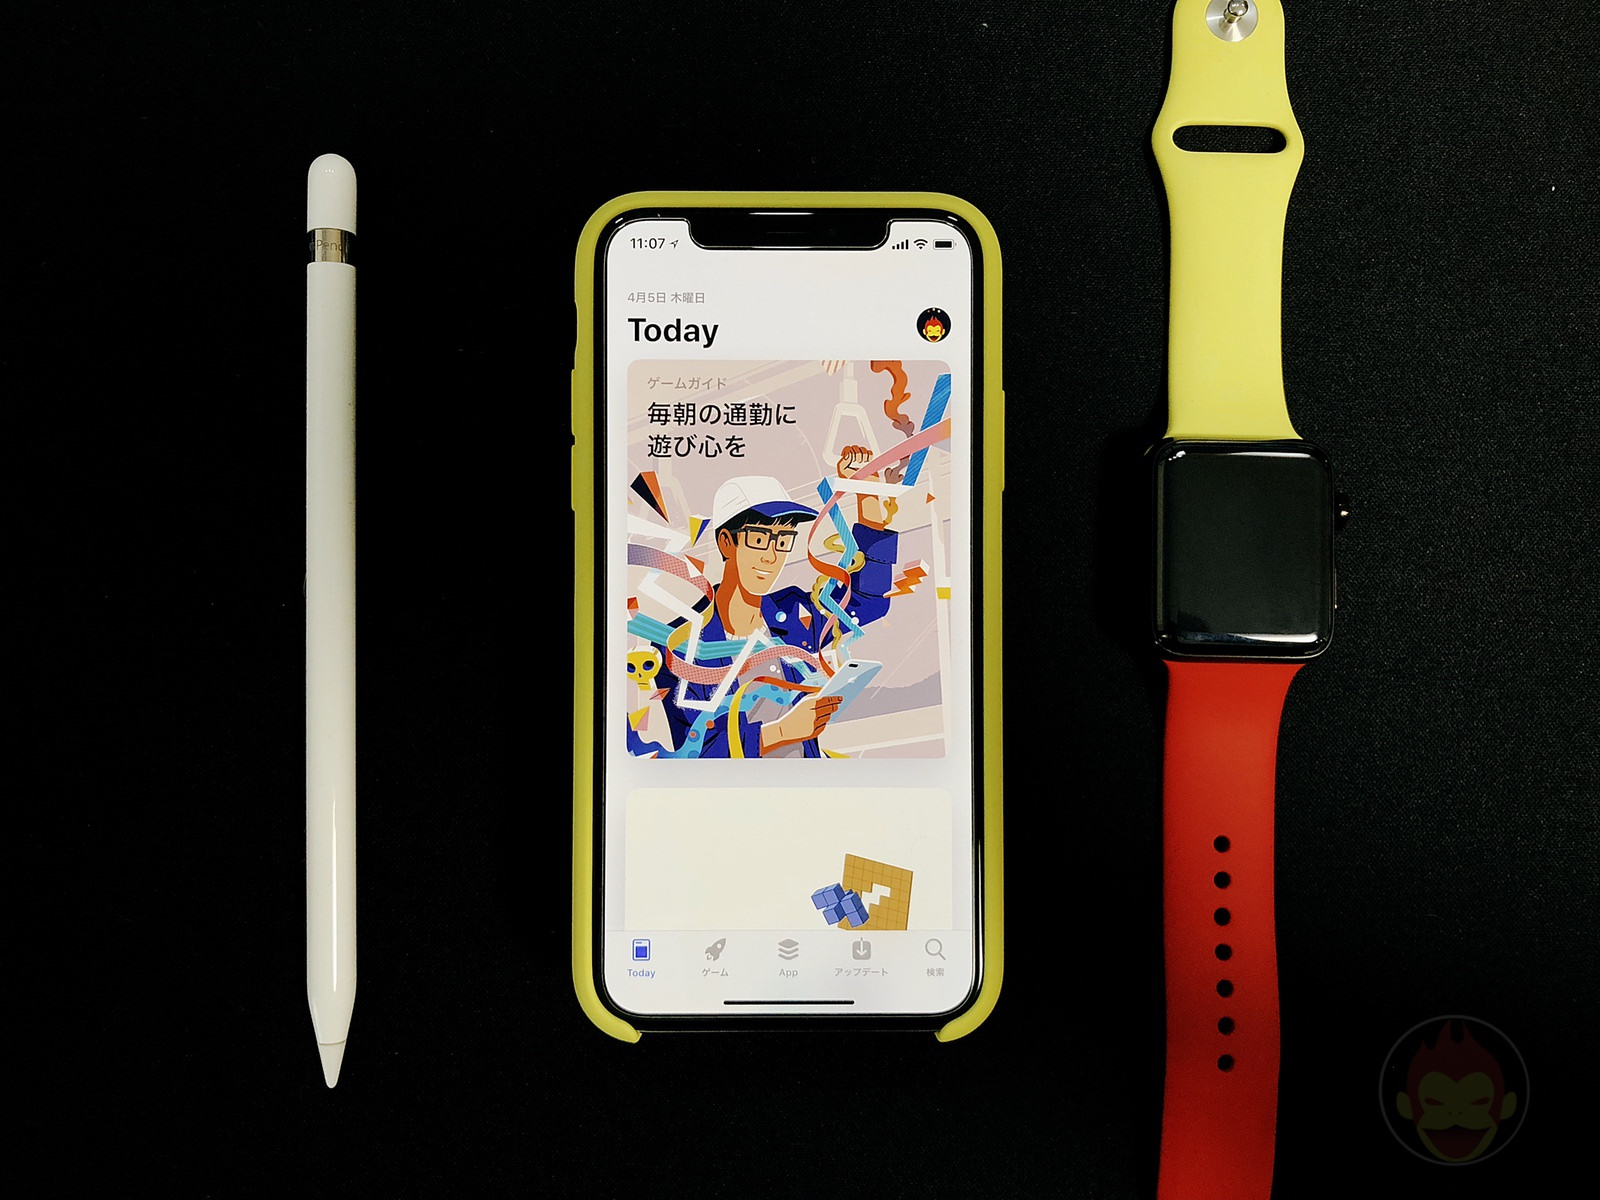 iPhone X and App Store with Apple Pencil and Watch